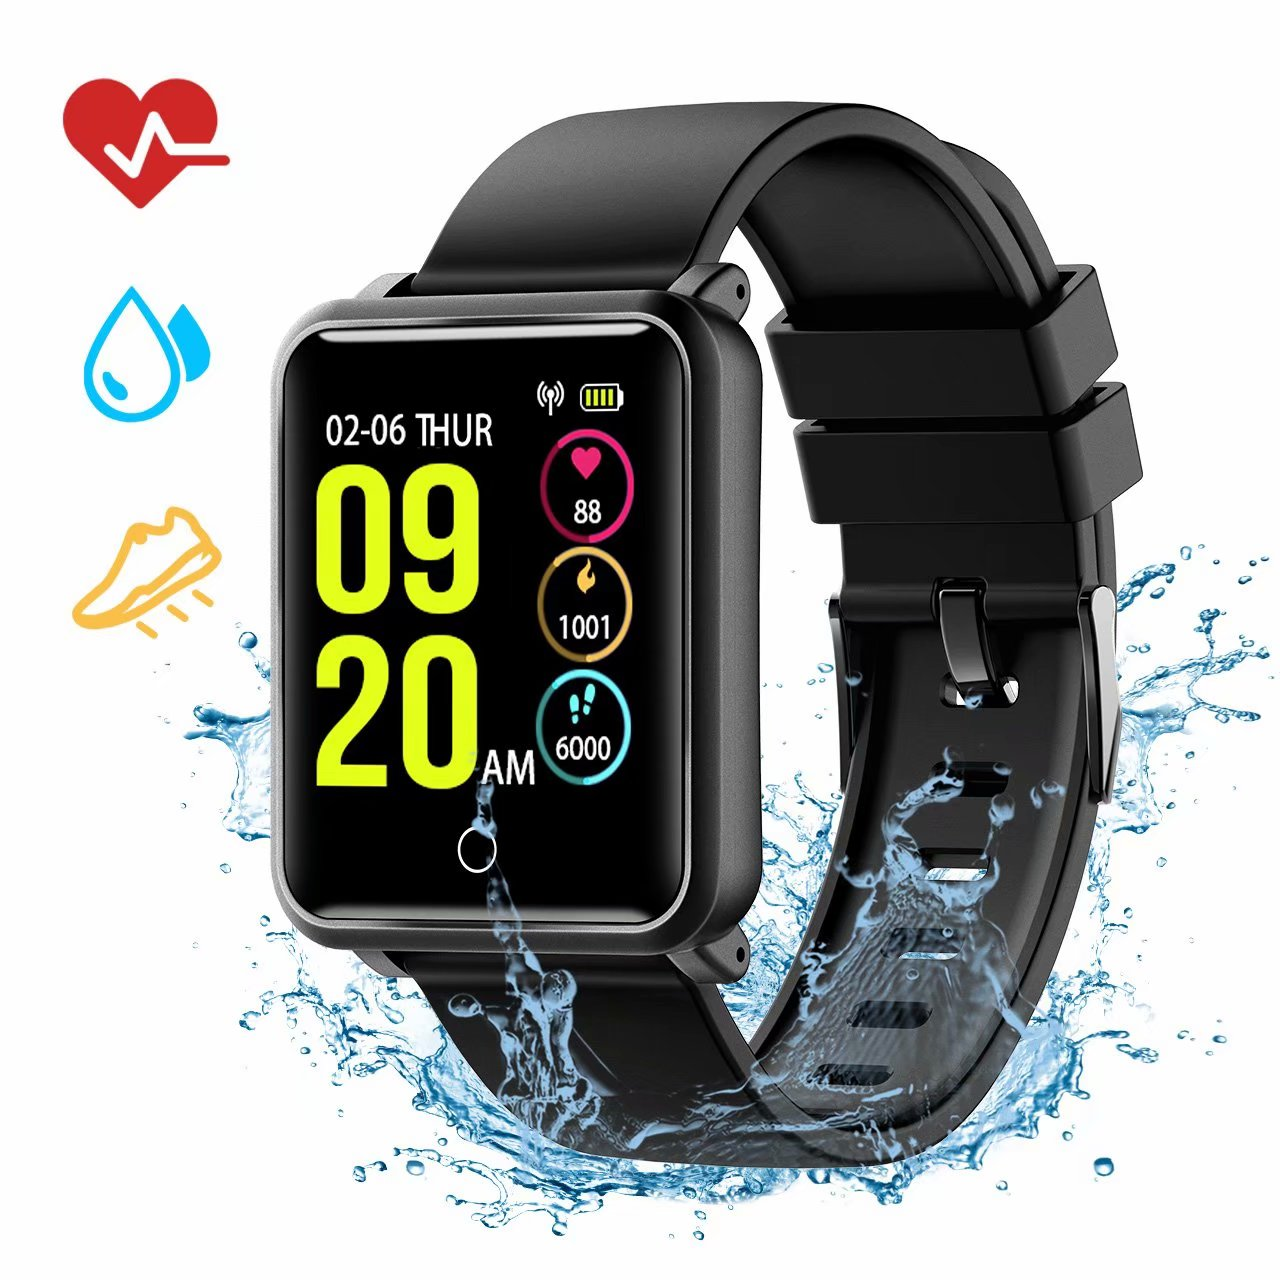 VicTsing Smart Watch with Sleep Monitor, Fitness Tracker, Heart Rate Monitor, IP68 Waterproof, Calorie Counter and Activity Tracker, Call and Message Reminder, Camera Control, Sedentary Alert